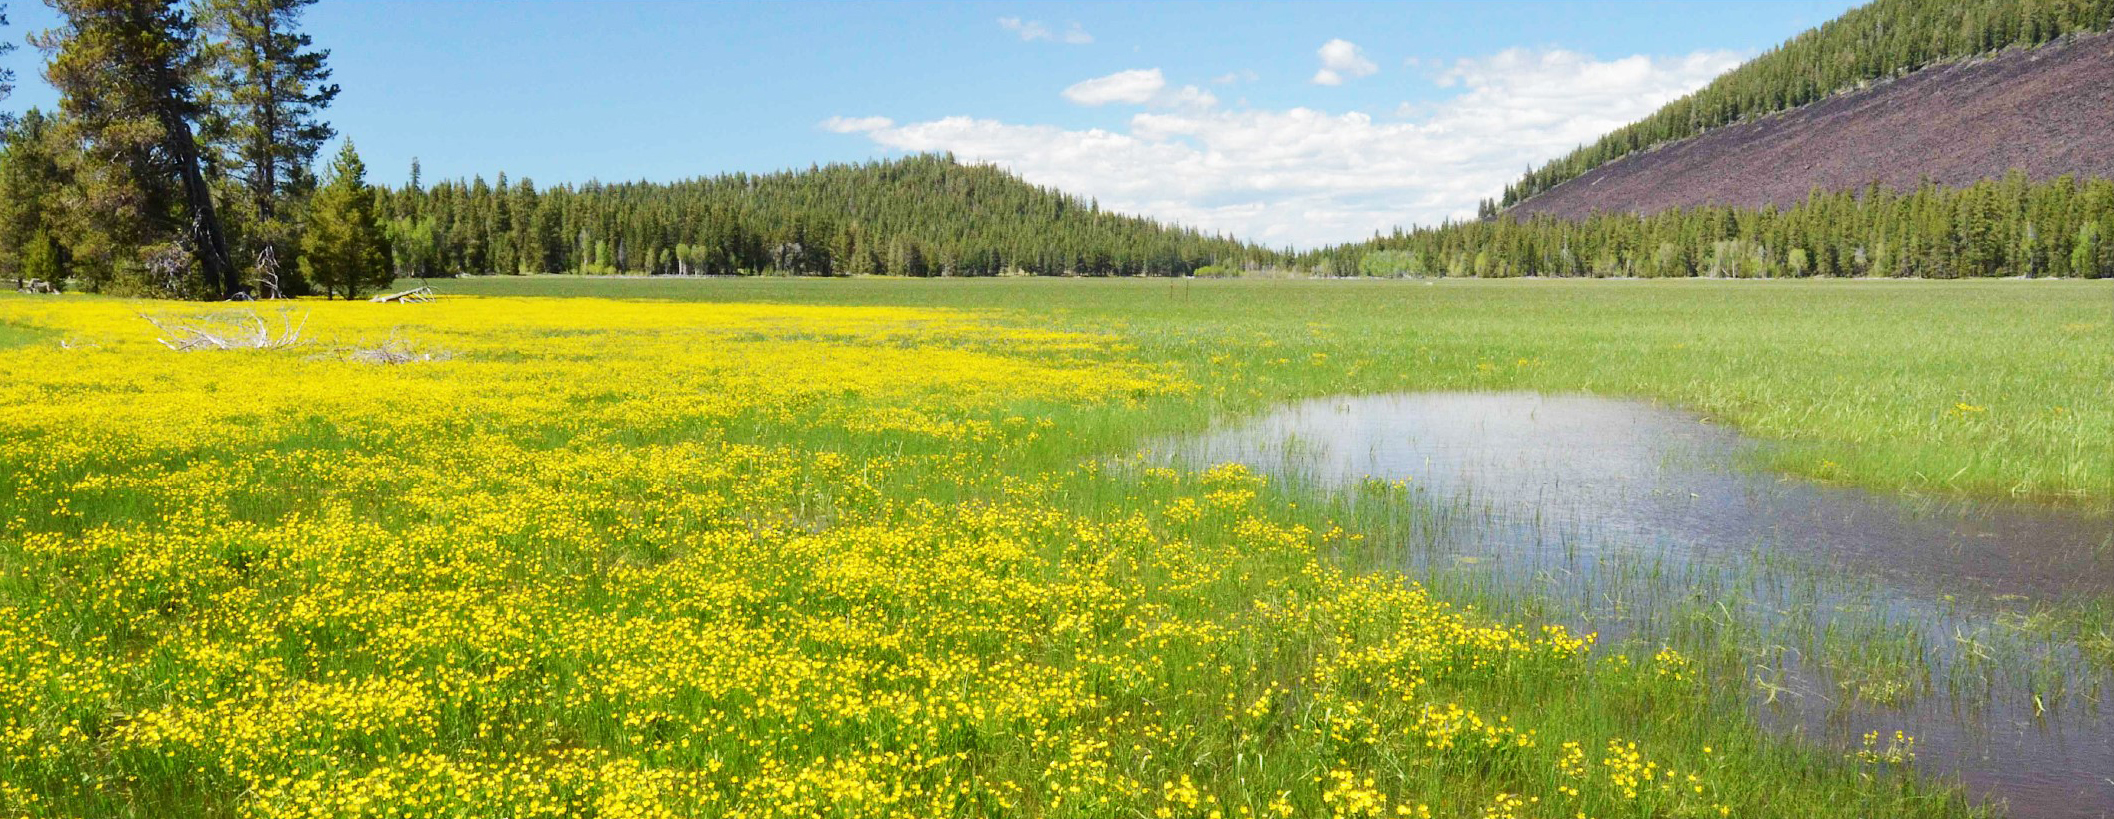 Choptie Prairie, located about 15 miles north of Klamath Falls, is among the ephemeral lakes in Southern Oregon that support a unique mix of plants and wildlife. (Klamath County Museum)